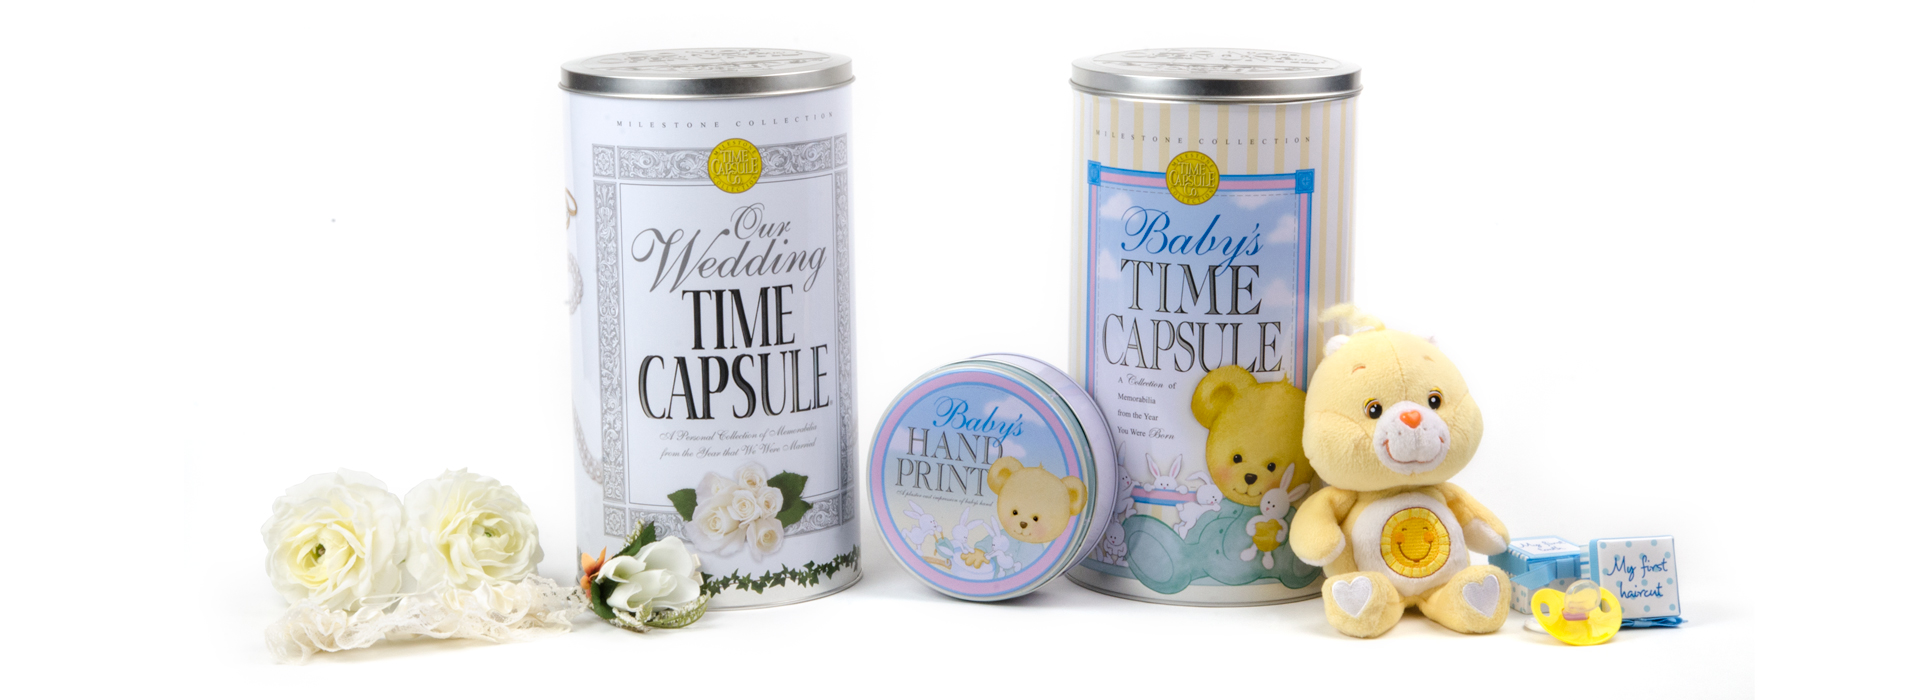 Wedding Time Capsule, Baby Time Capsule, and Baby Handprint Kit